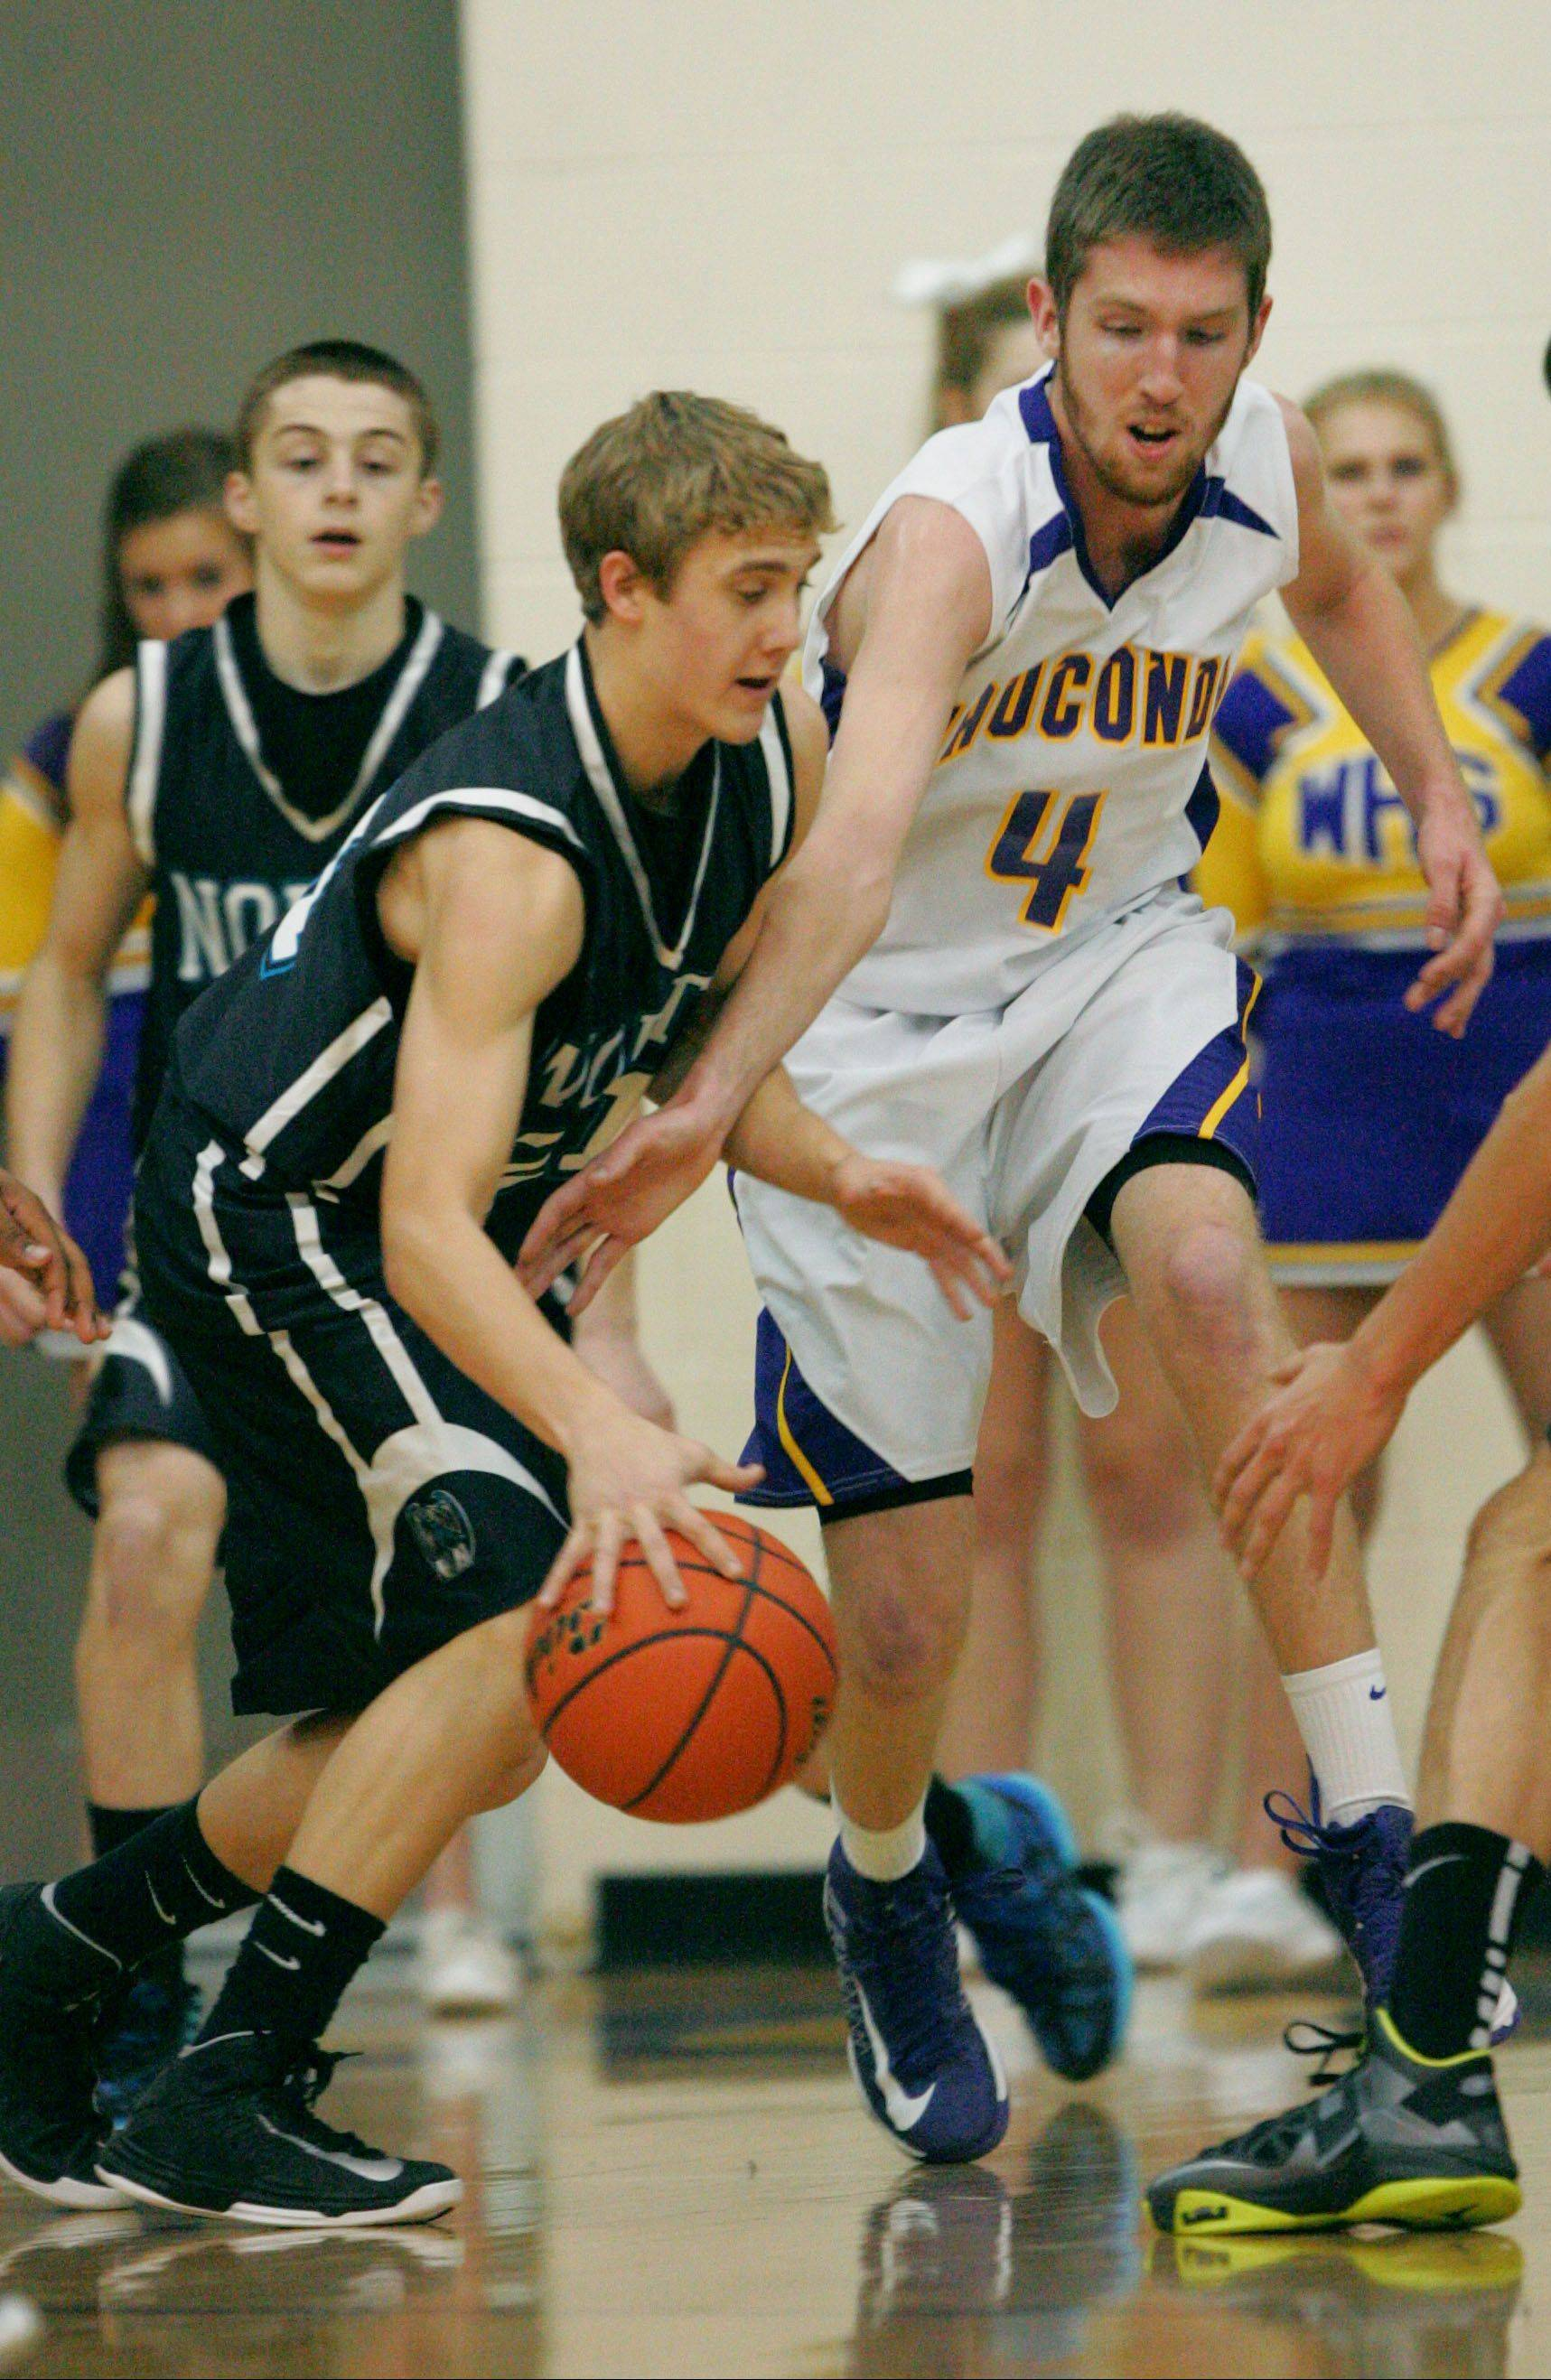 Wauconda�s Ricky Sidlowski, right, tries to steal the ball from Woodstock North�s Shane Zieman on Monday at Wauconda.